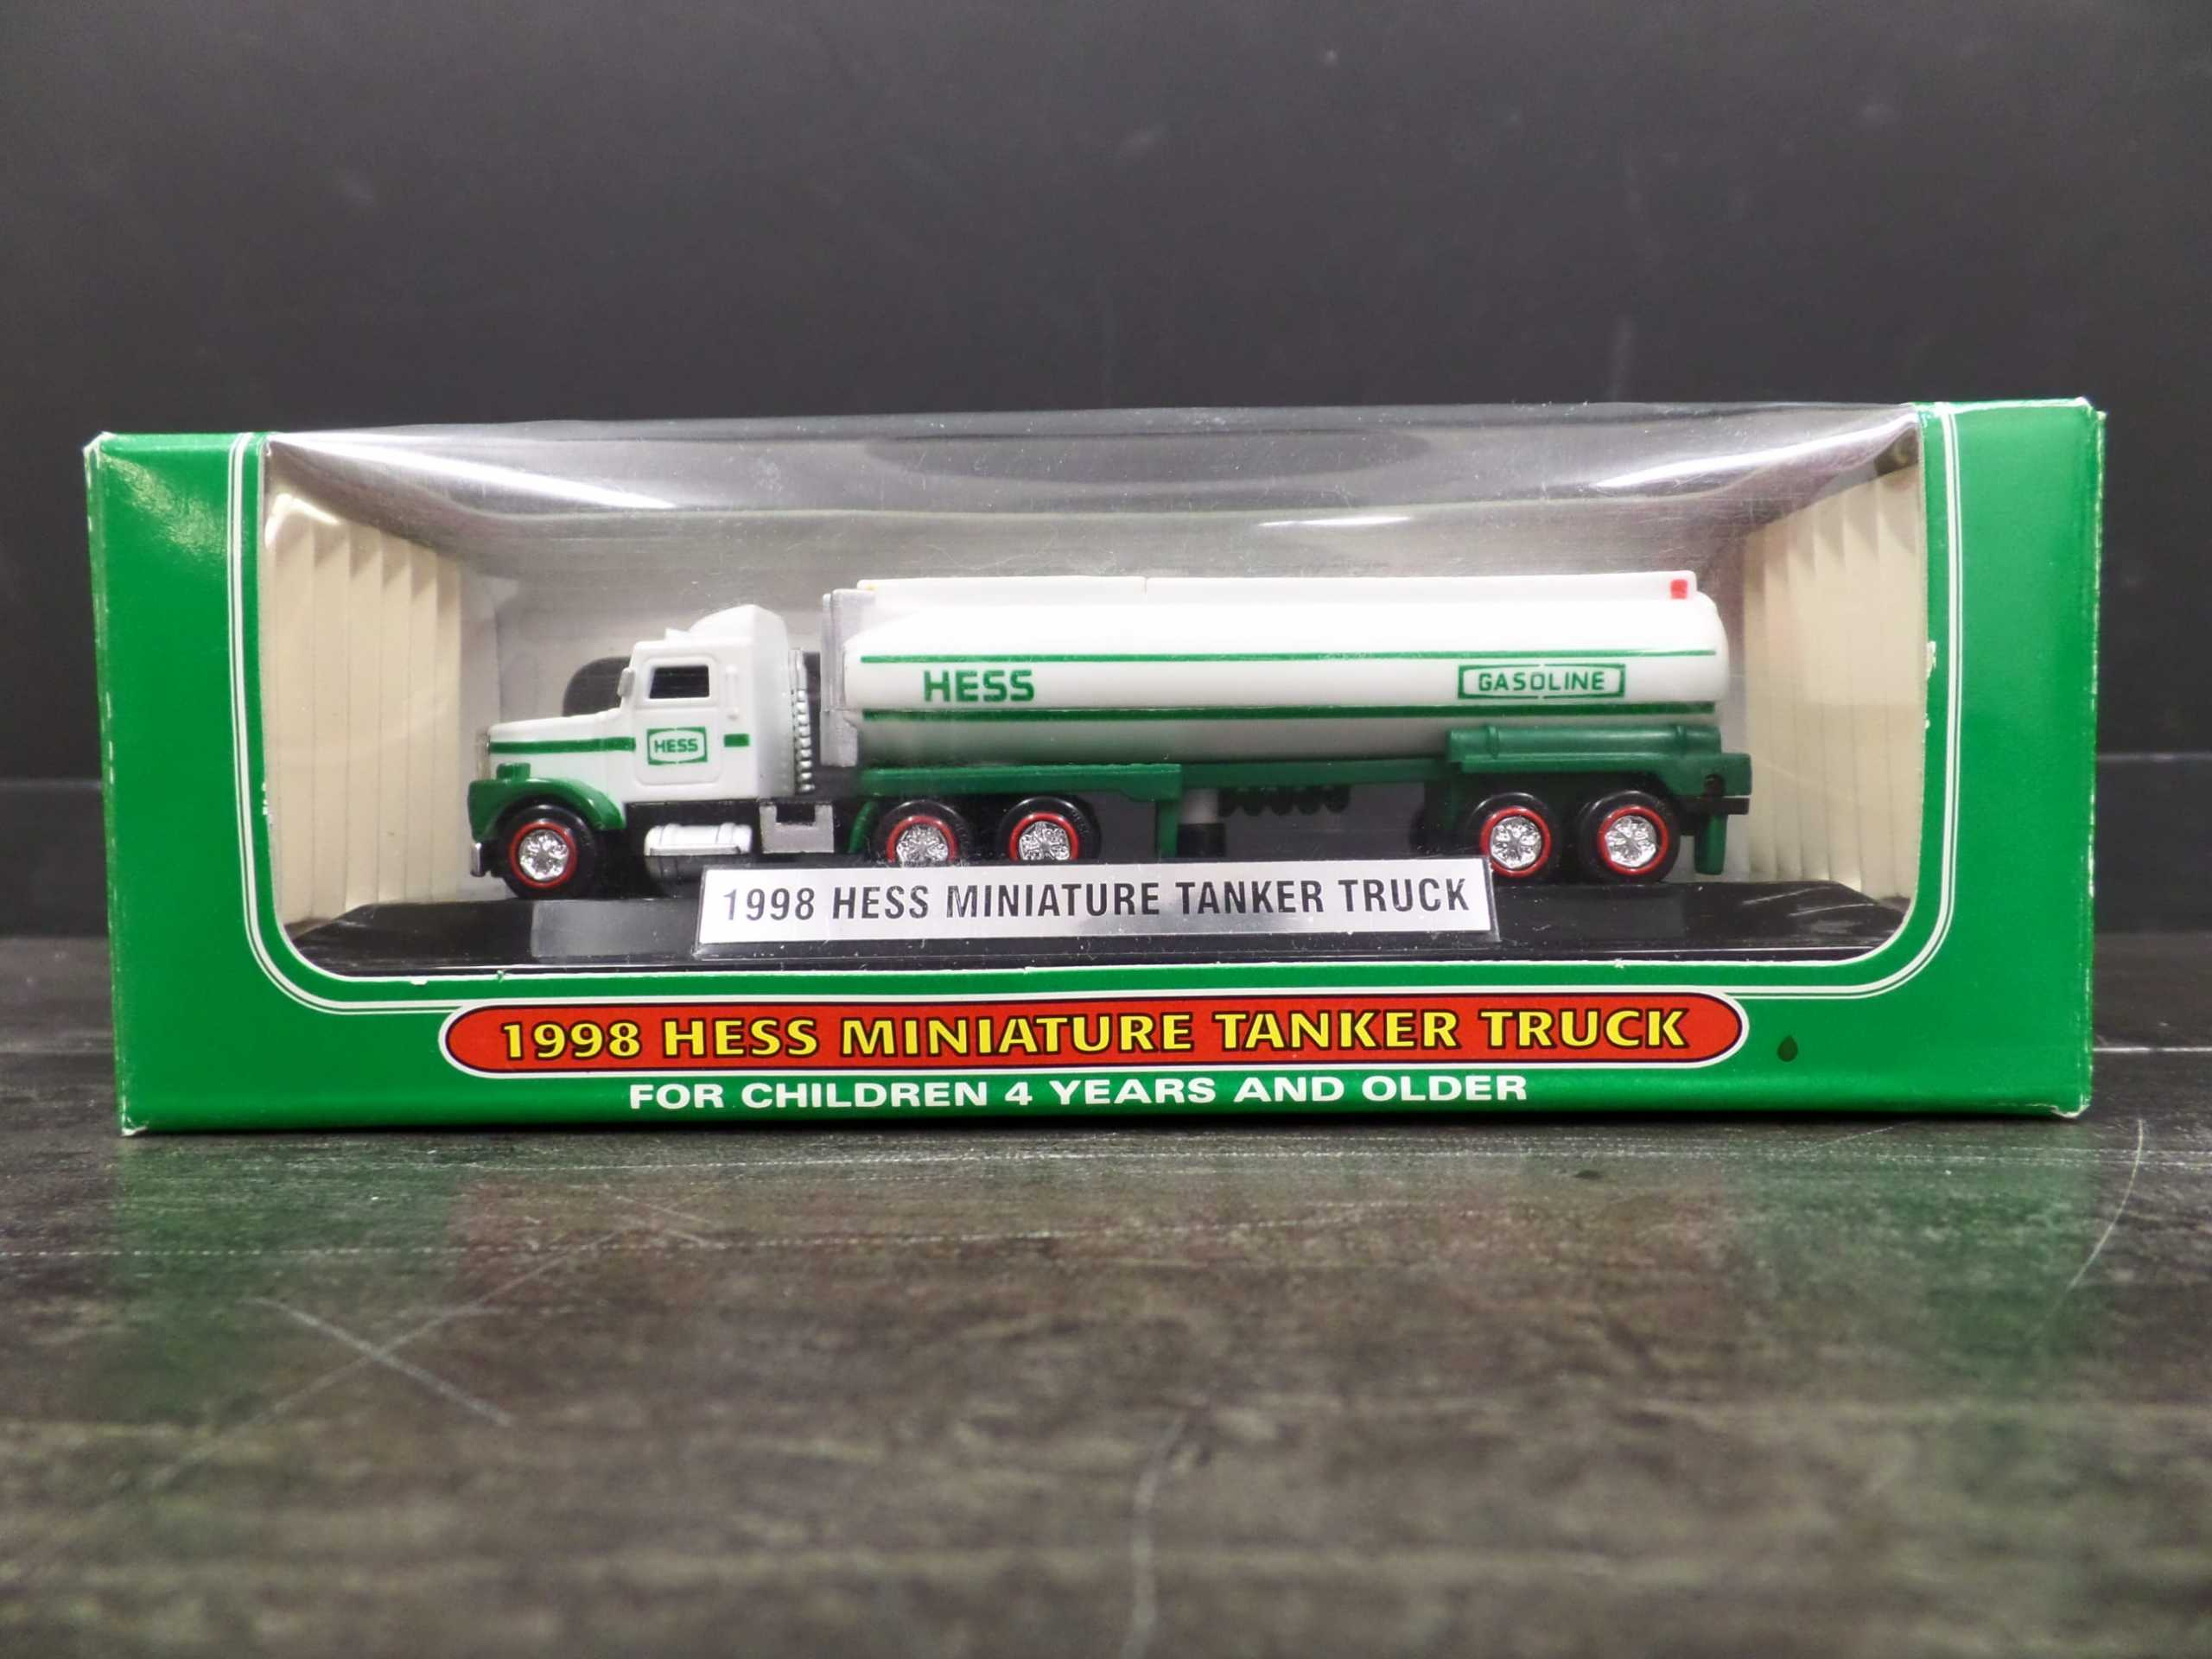 1998 MINI HESS TANKER TRUCK <br/> Donated by: WPBS SUPPORTER <br> Valued at: $74